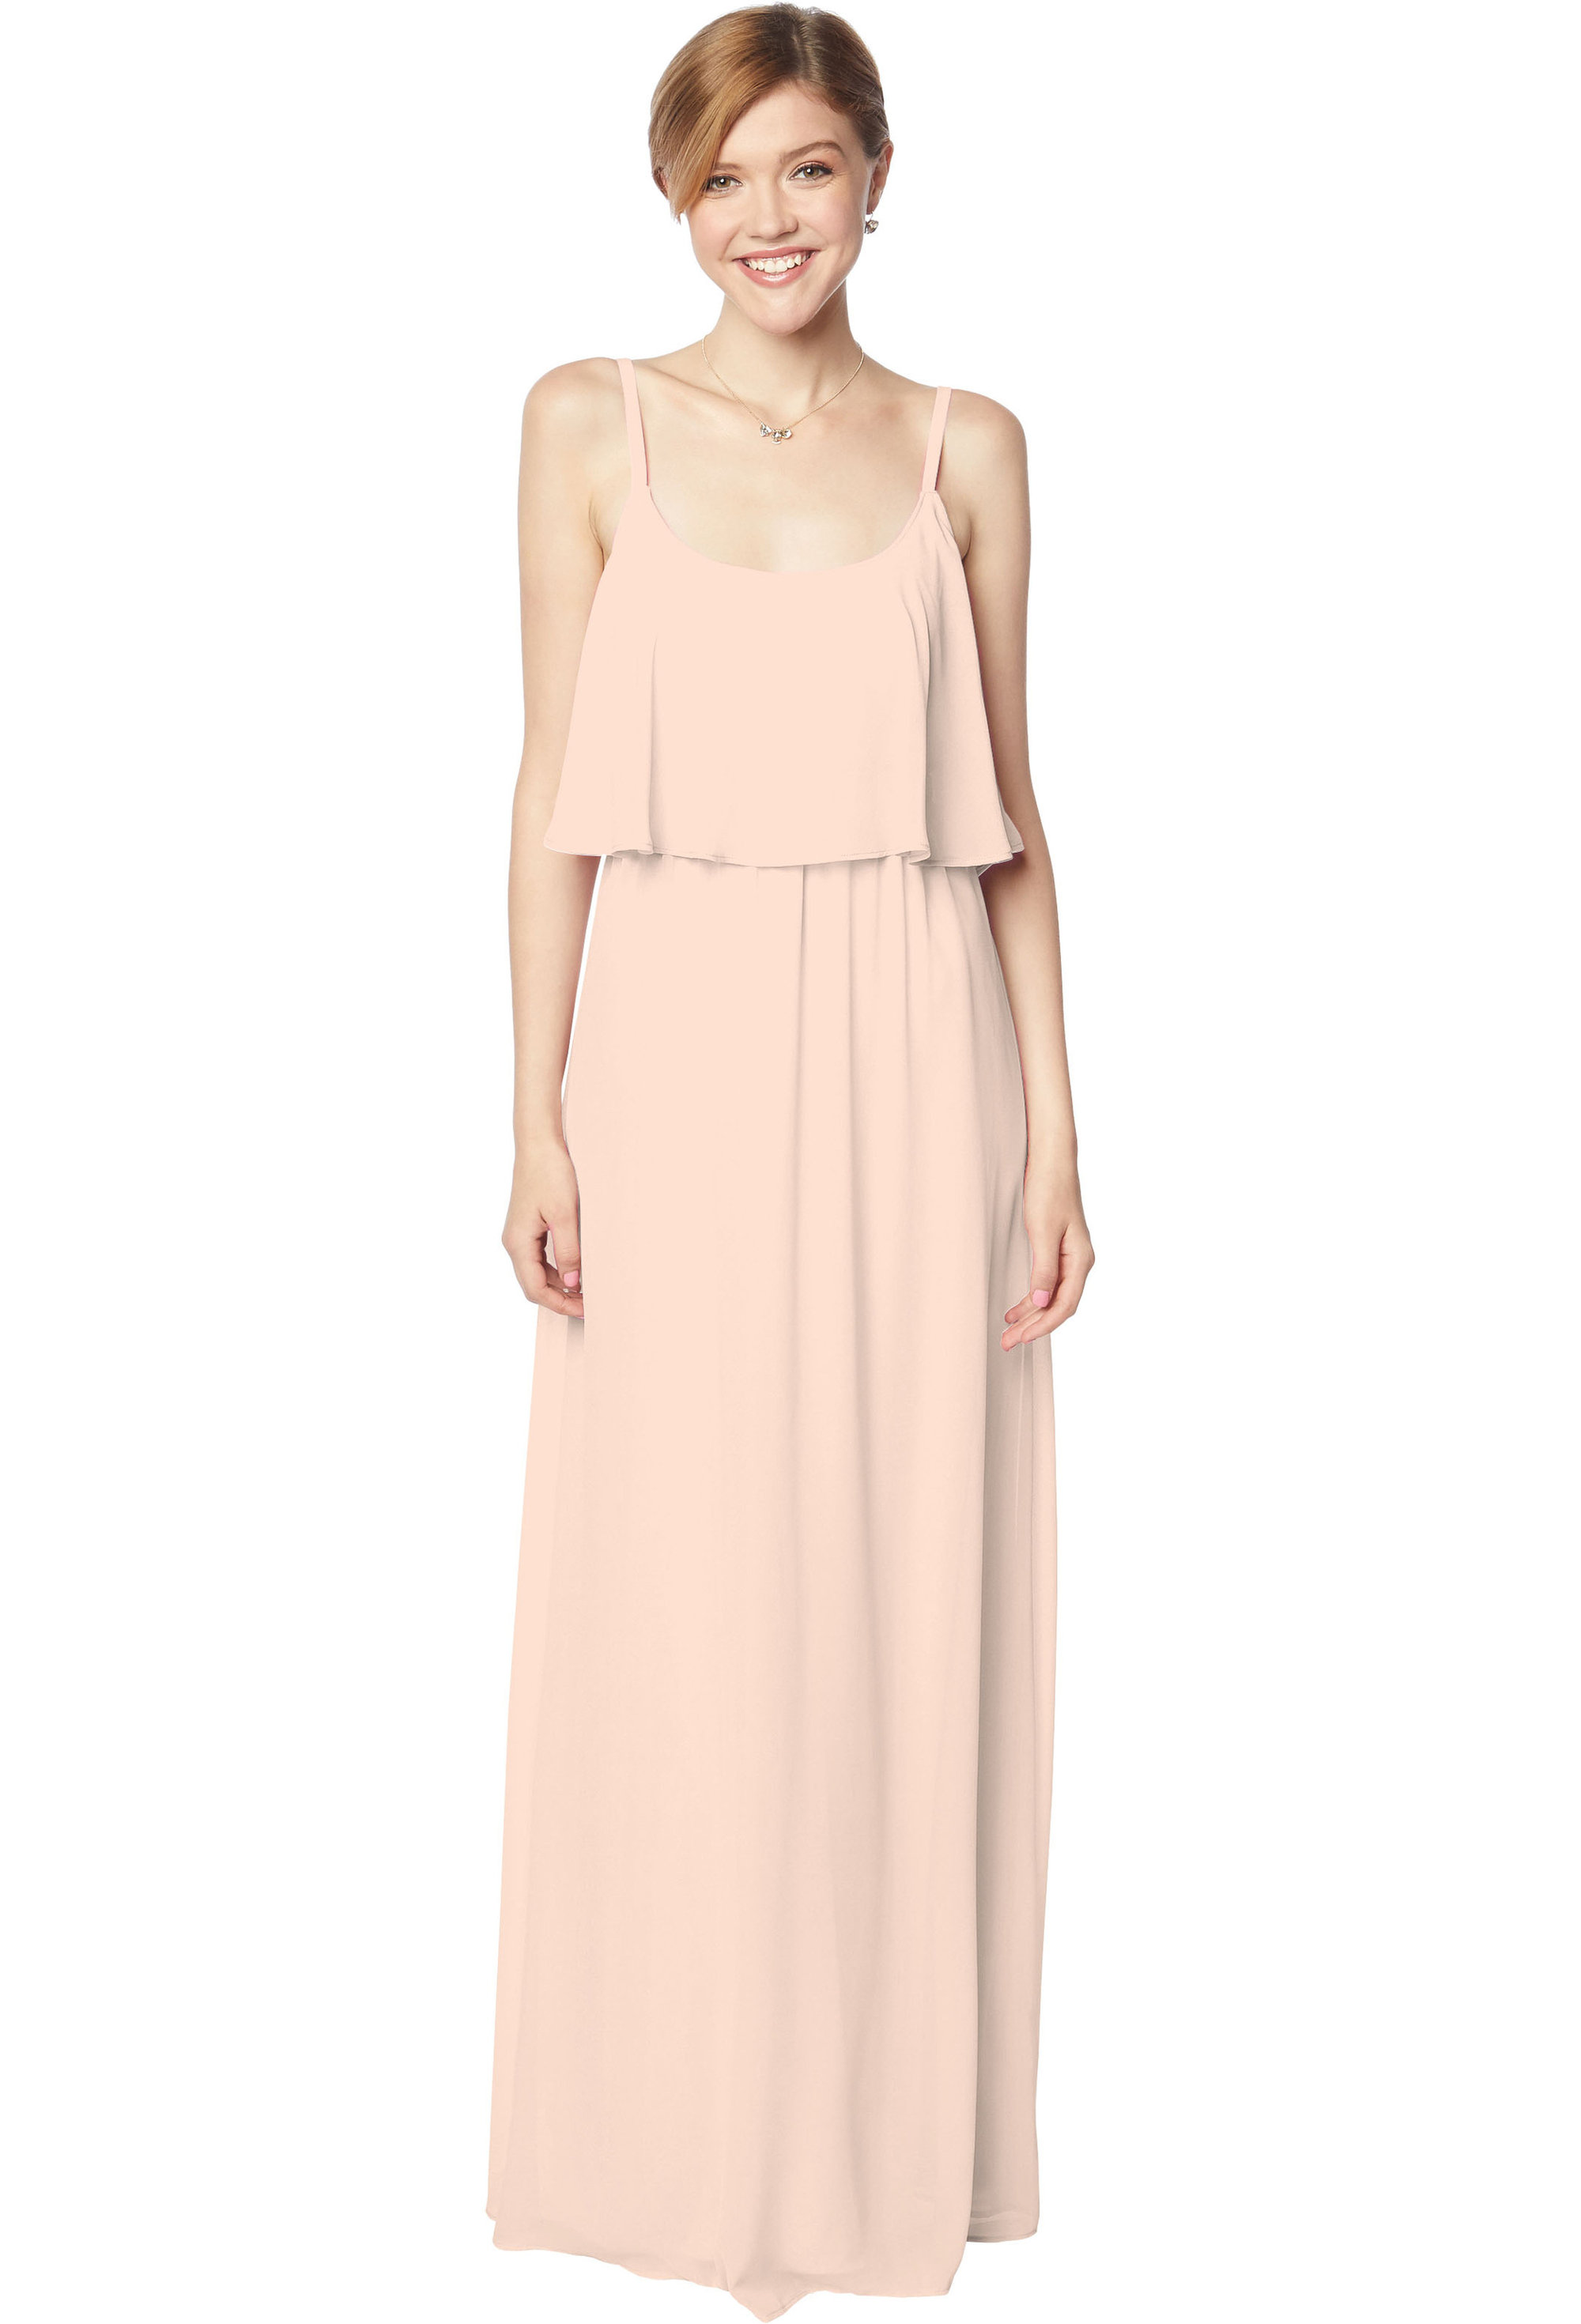 Bill Levkoff SHELL PINK Chiffon Scoop A-line gown, $170.00 Front